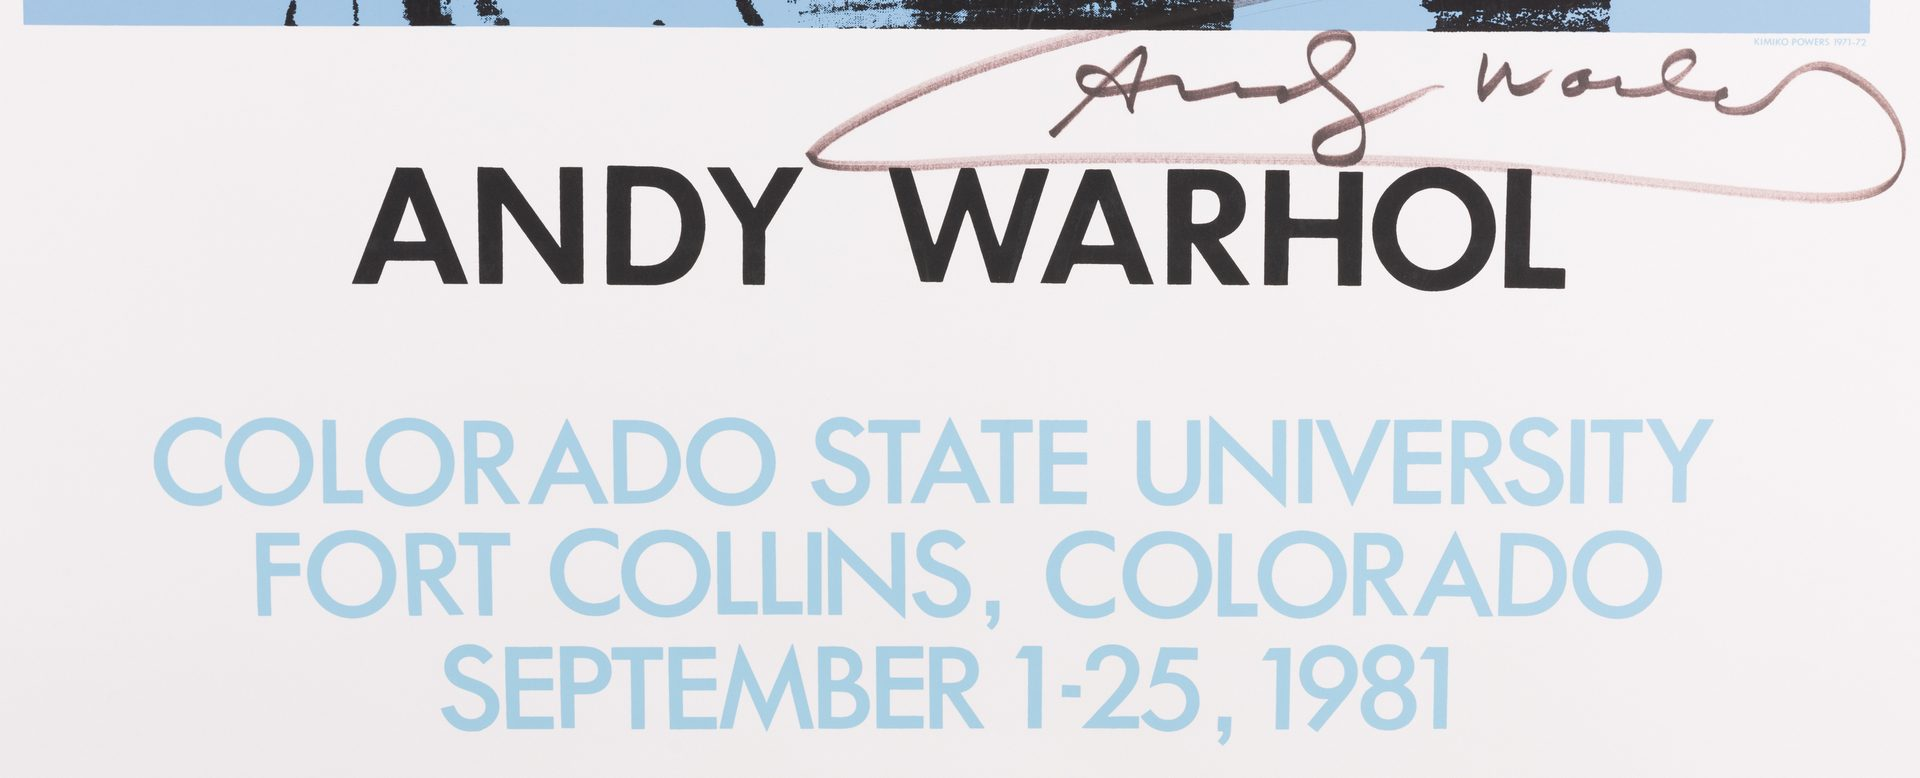 Lot 460: Andy Warhol Signed Poster